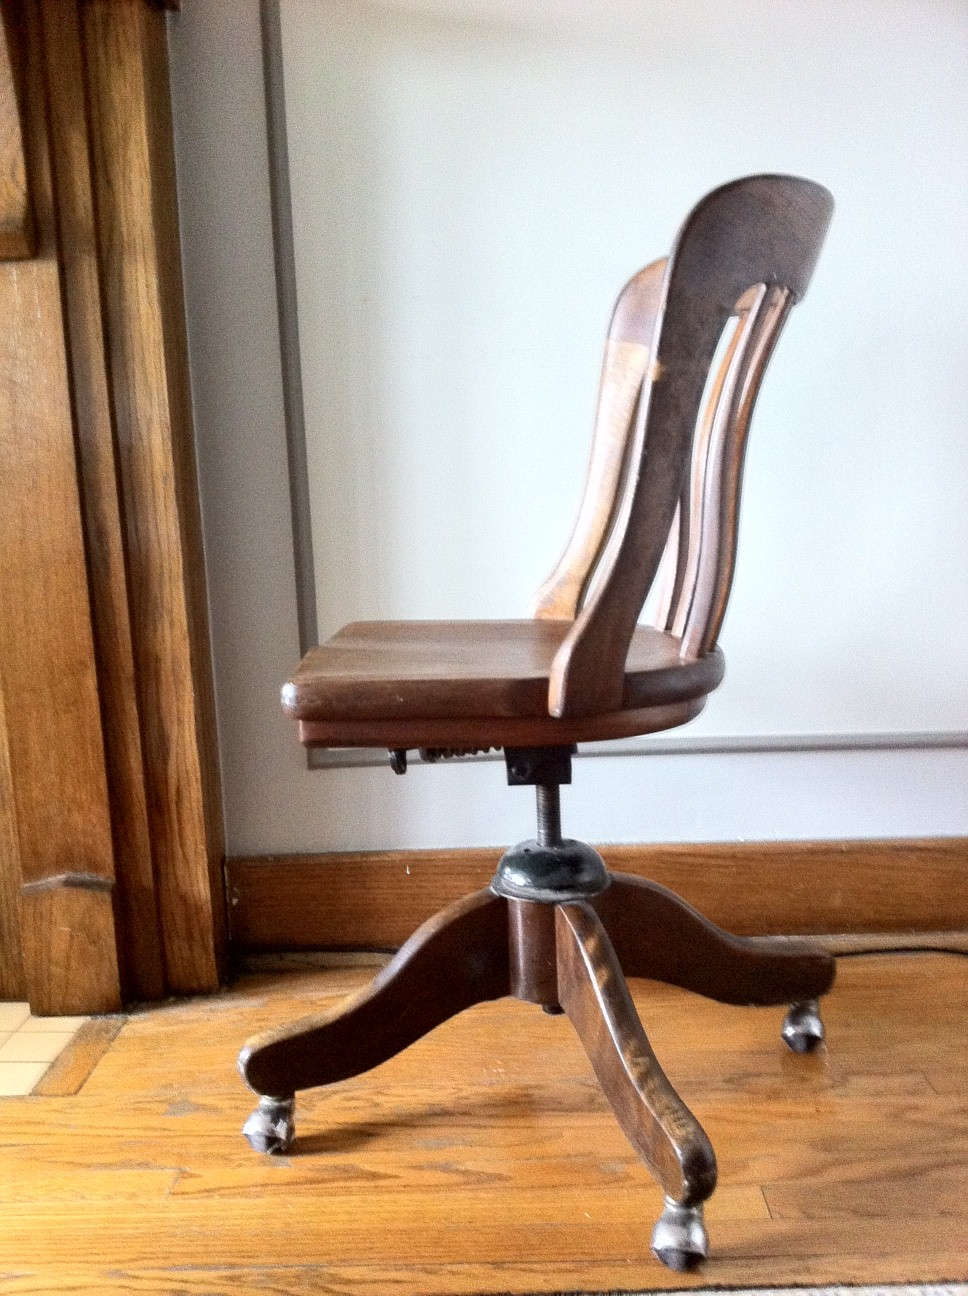 *SOLD* 1930s H. Krug Furniture Company Oak Chair: $80